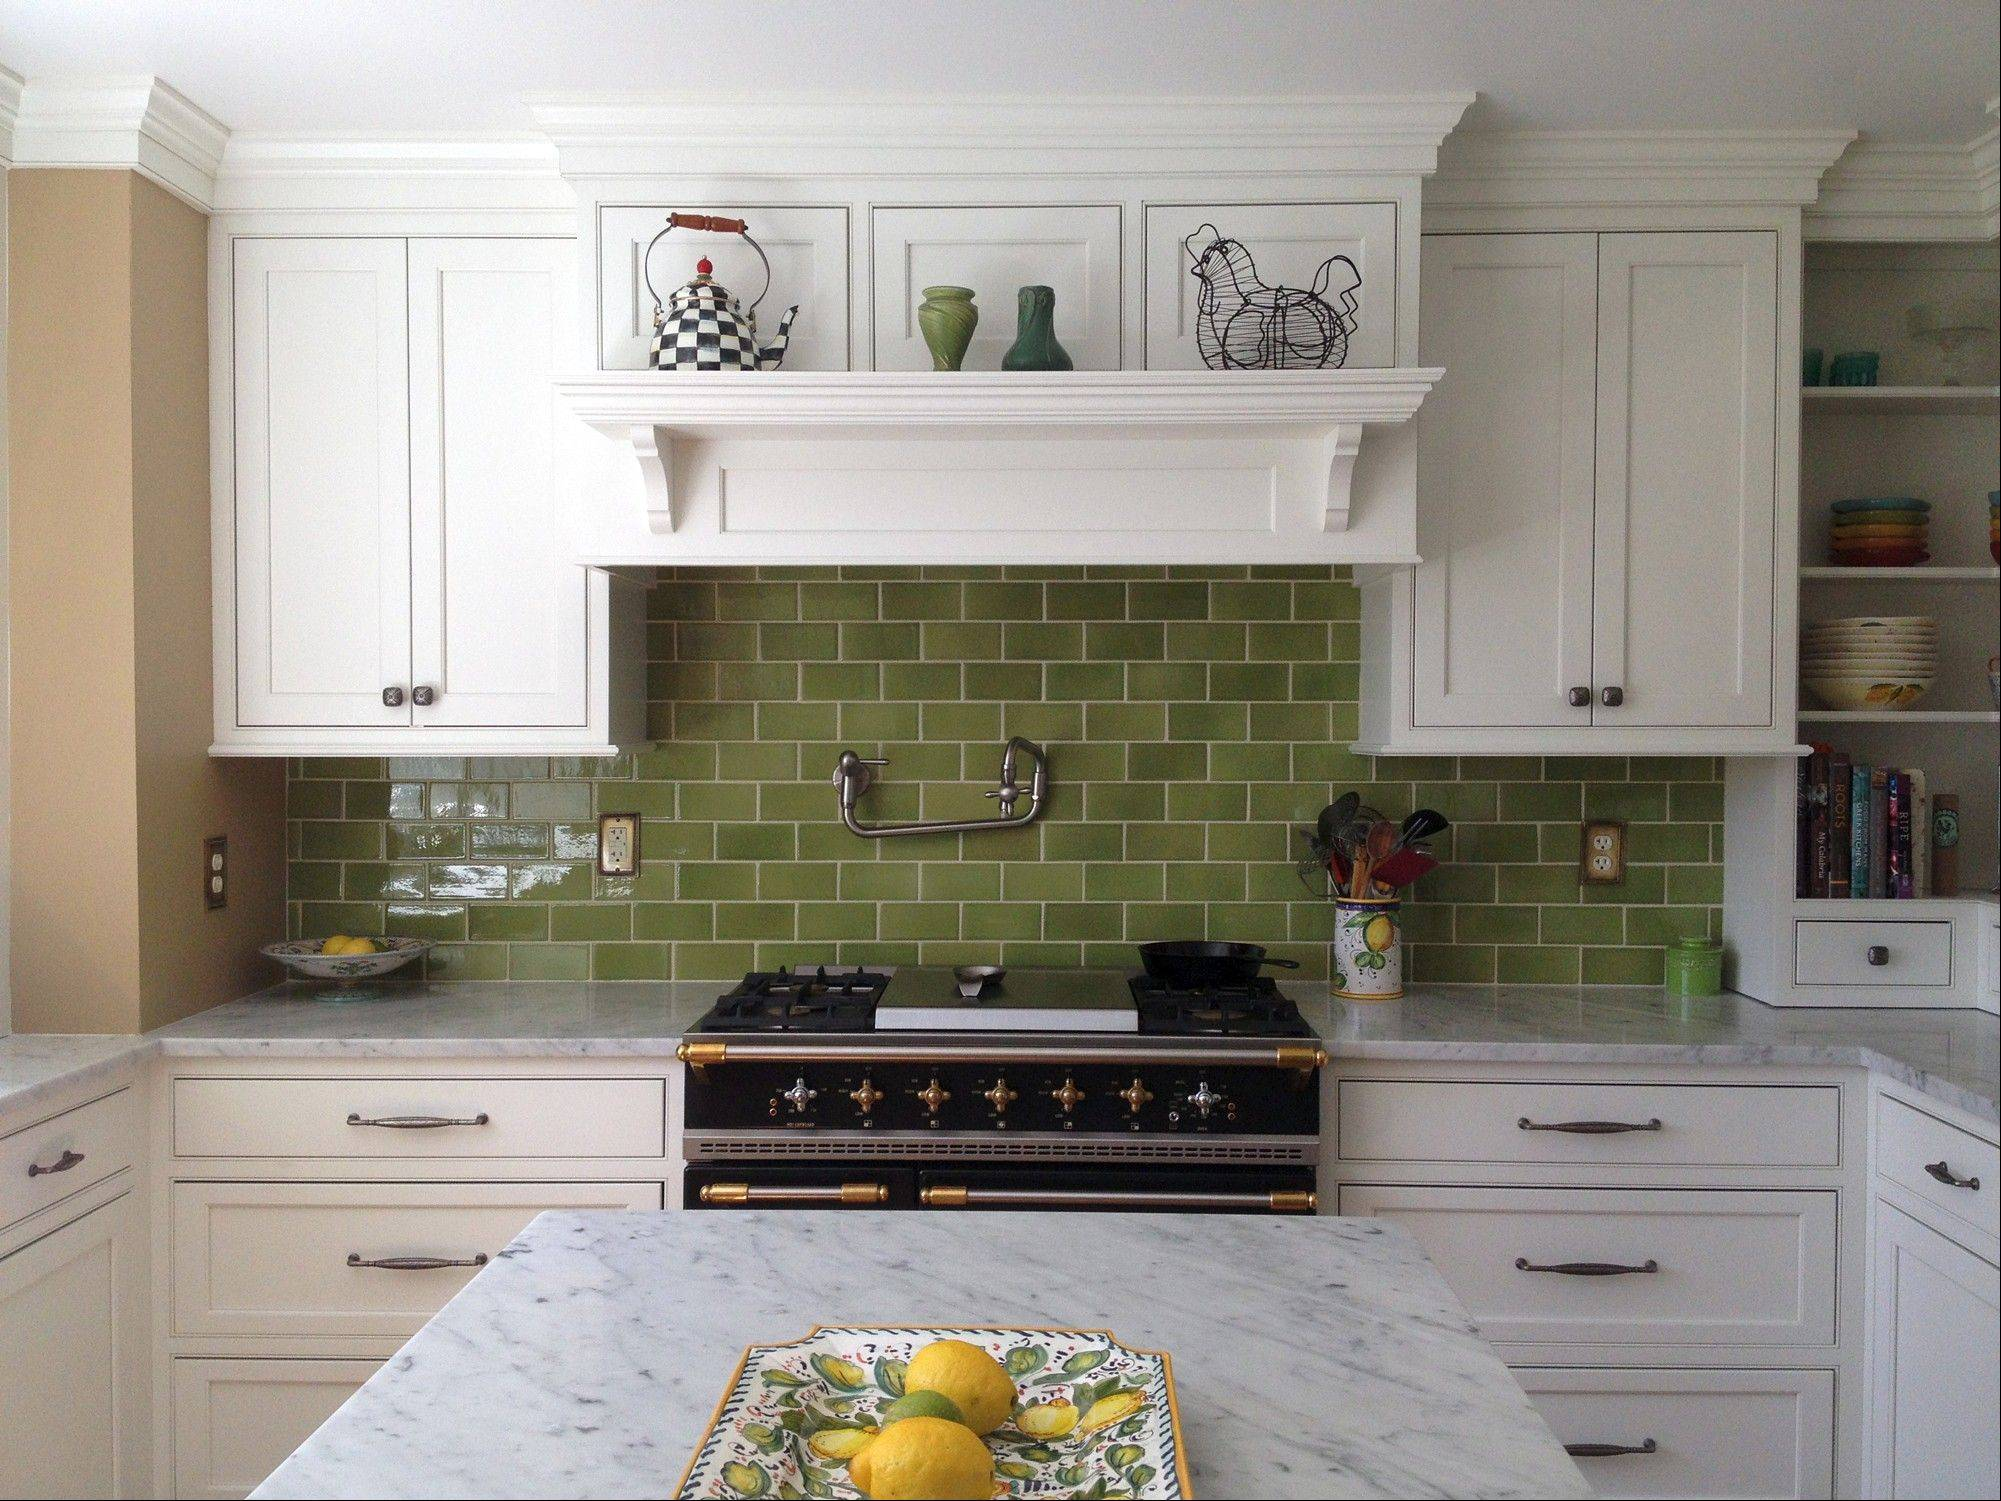 Domenica Marchetti's two-month kitchen renovation was a mix of must-haves and compromises. The heavy duty French range and marble countertops count among the former while the semi-custom cabinets and green subway tiles were among the latter.